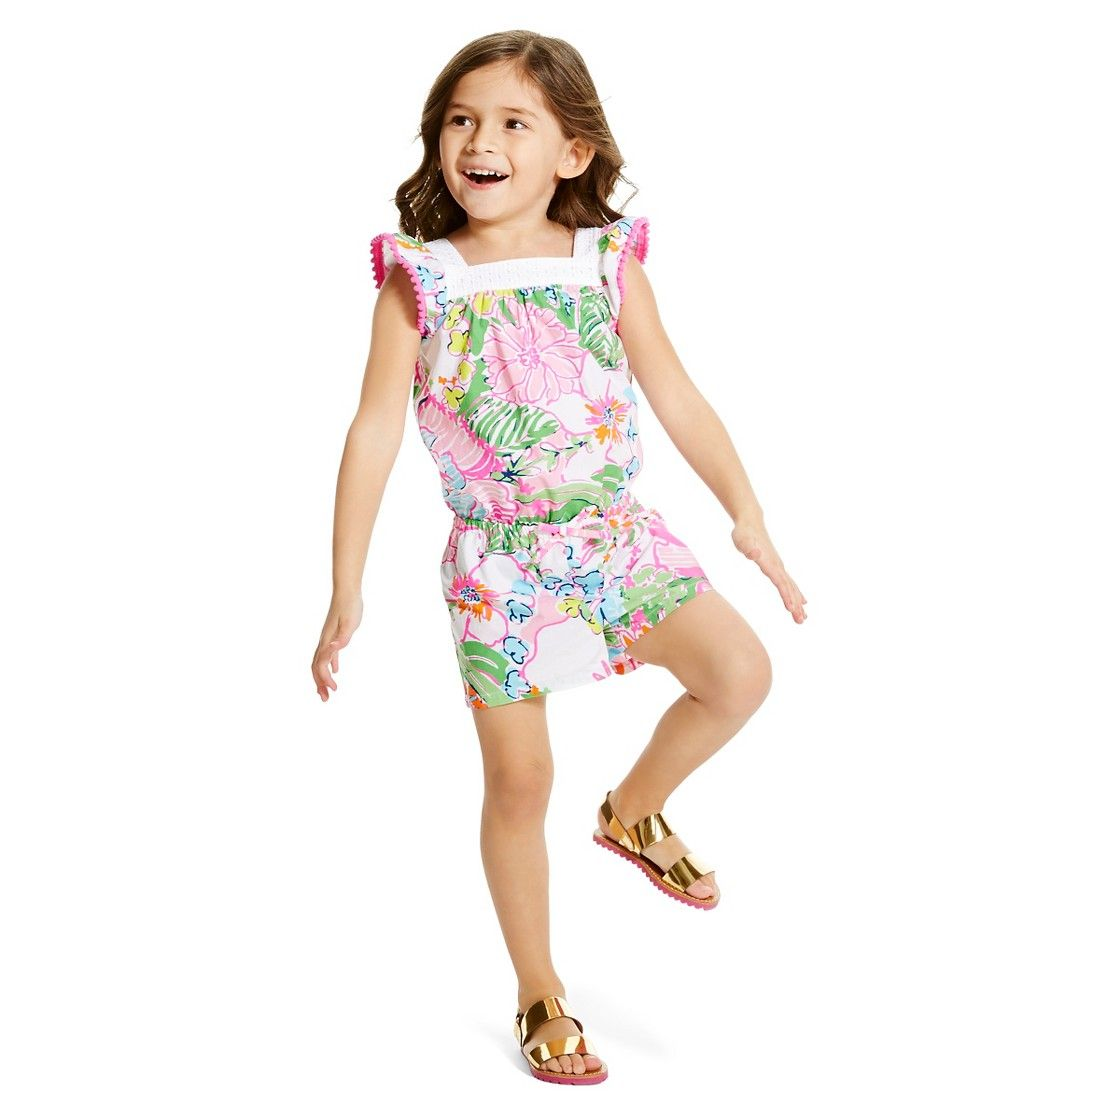 e65347e20a Lilly Pulitzer for Target Infant Toddler Girls  Romper - Nosie Posey ...